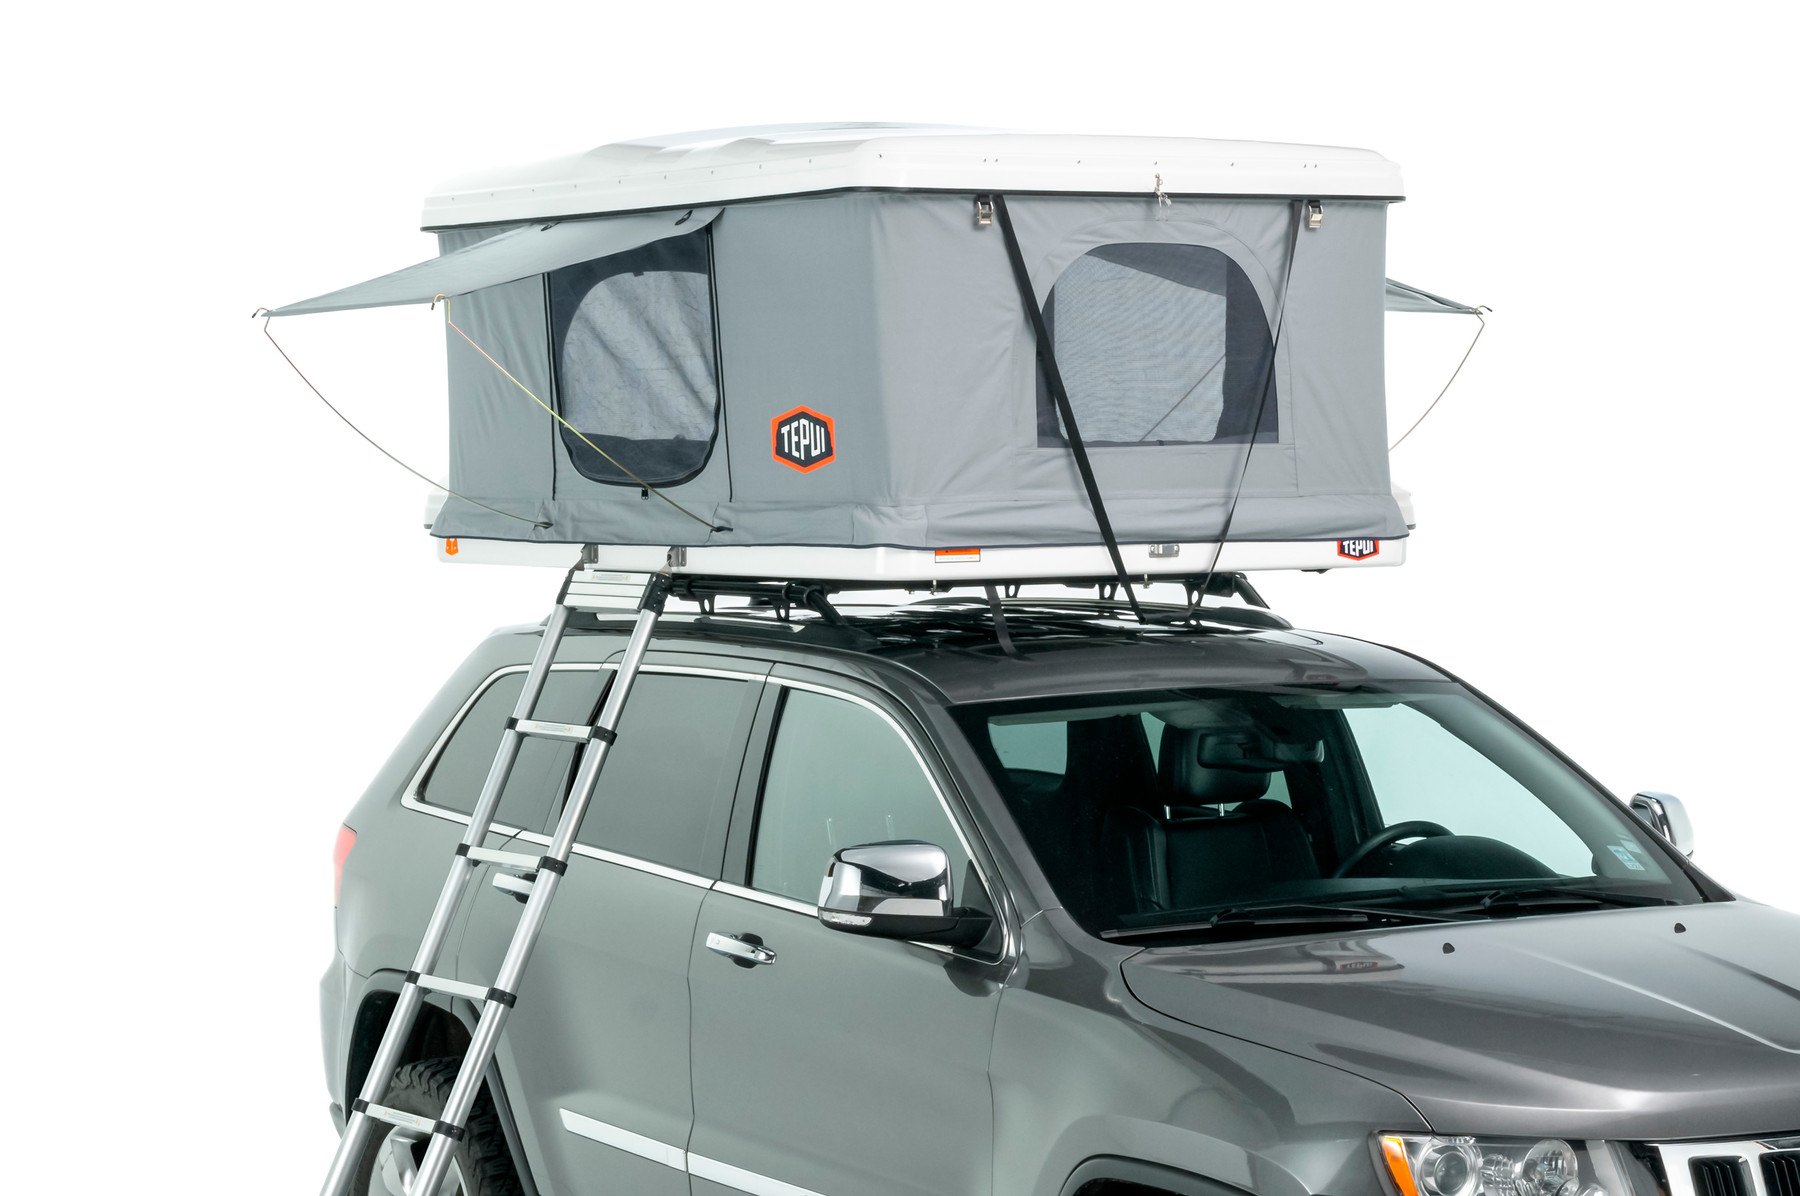 Tepui rooftop tent hybox in grey shown installed on a vehicle.